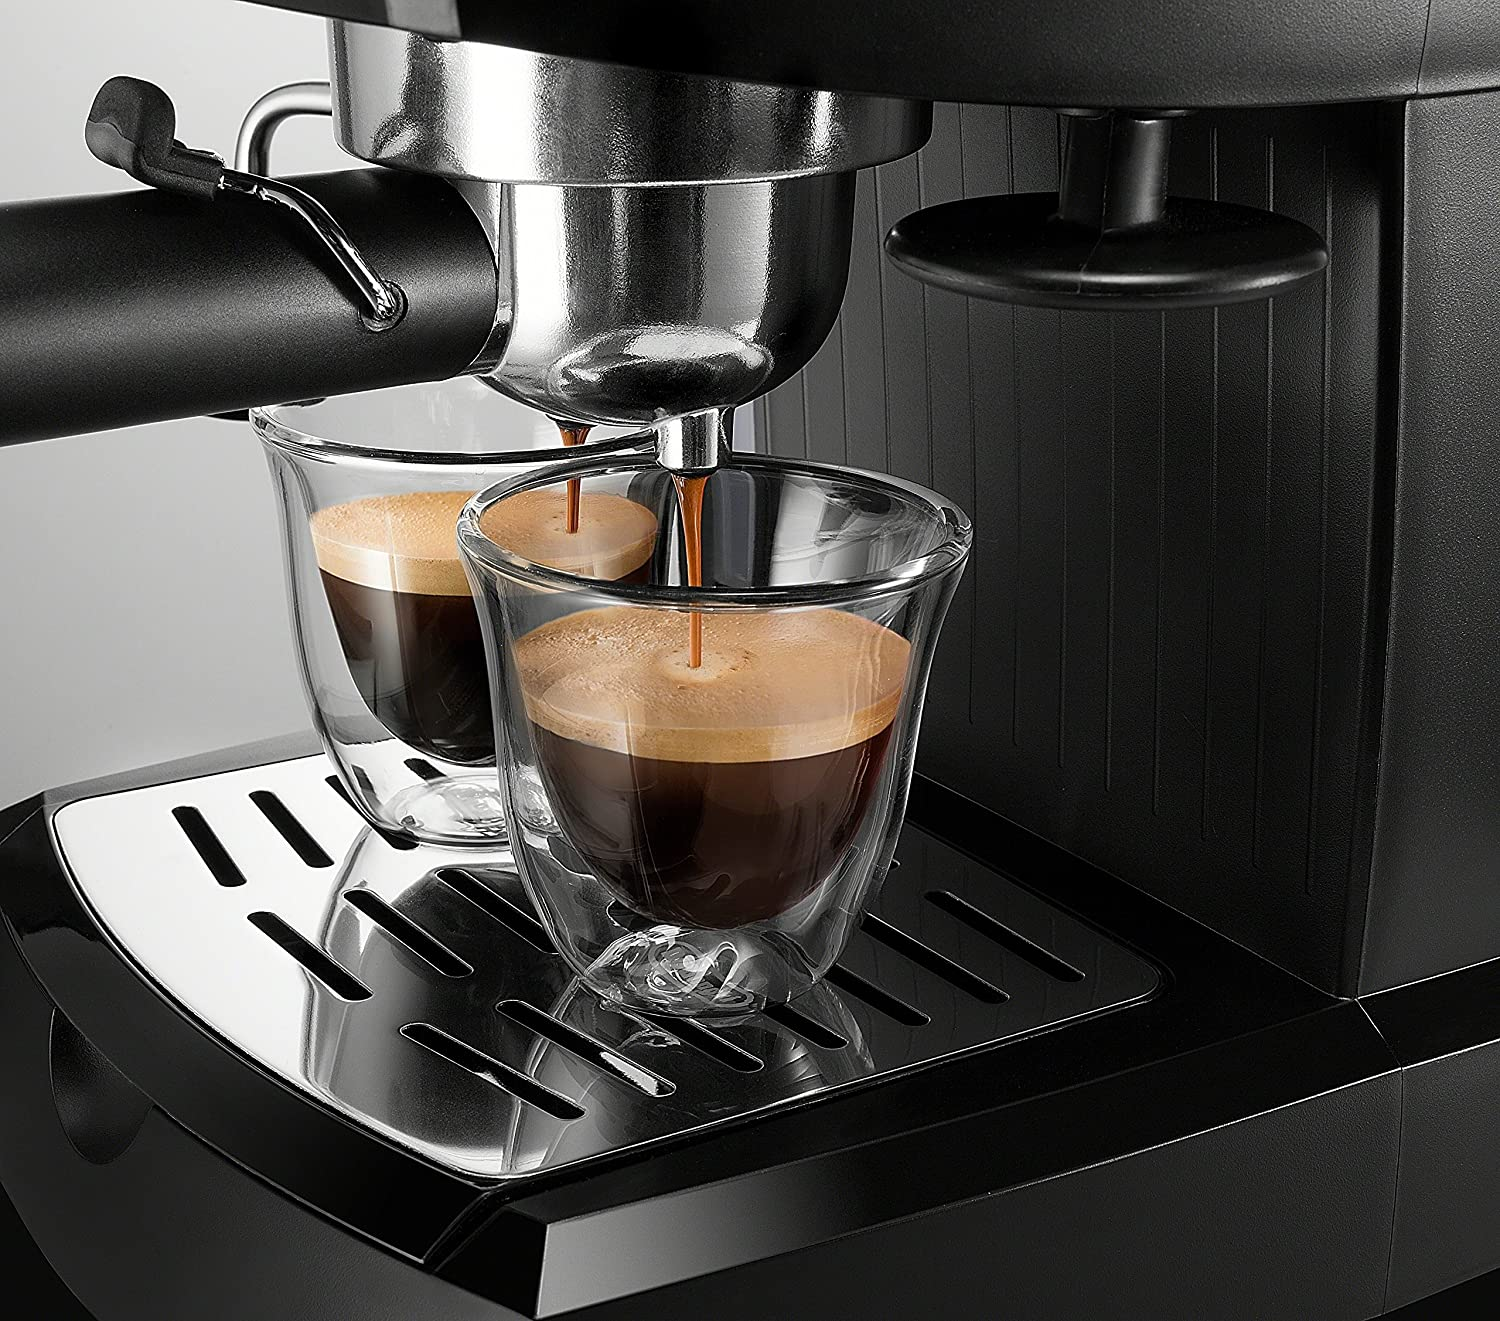 De'Longhi EC155 Espresso and Cappuccino Maker - coffee maker best buy